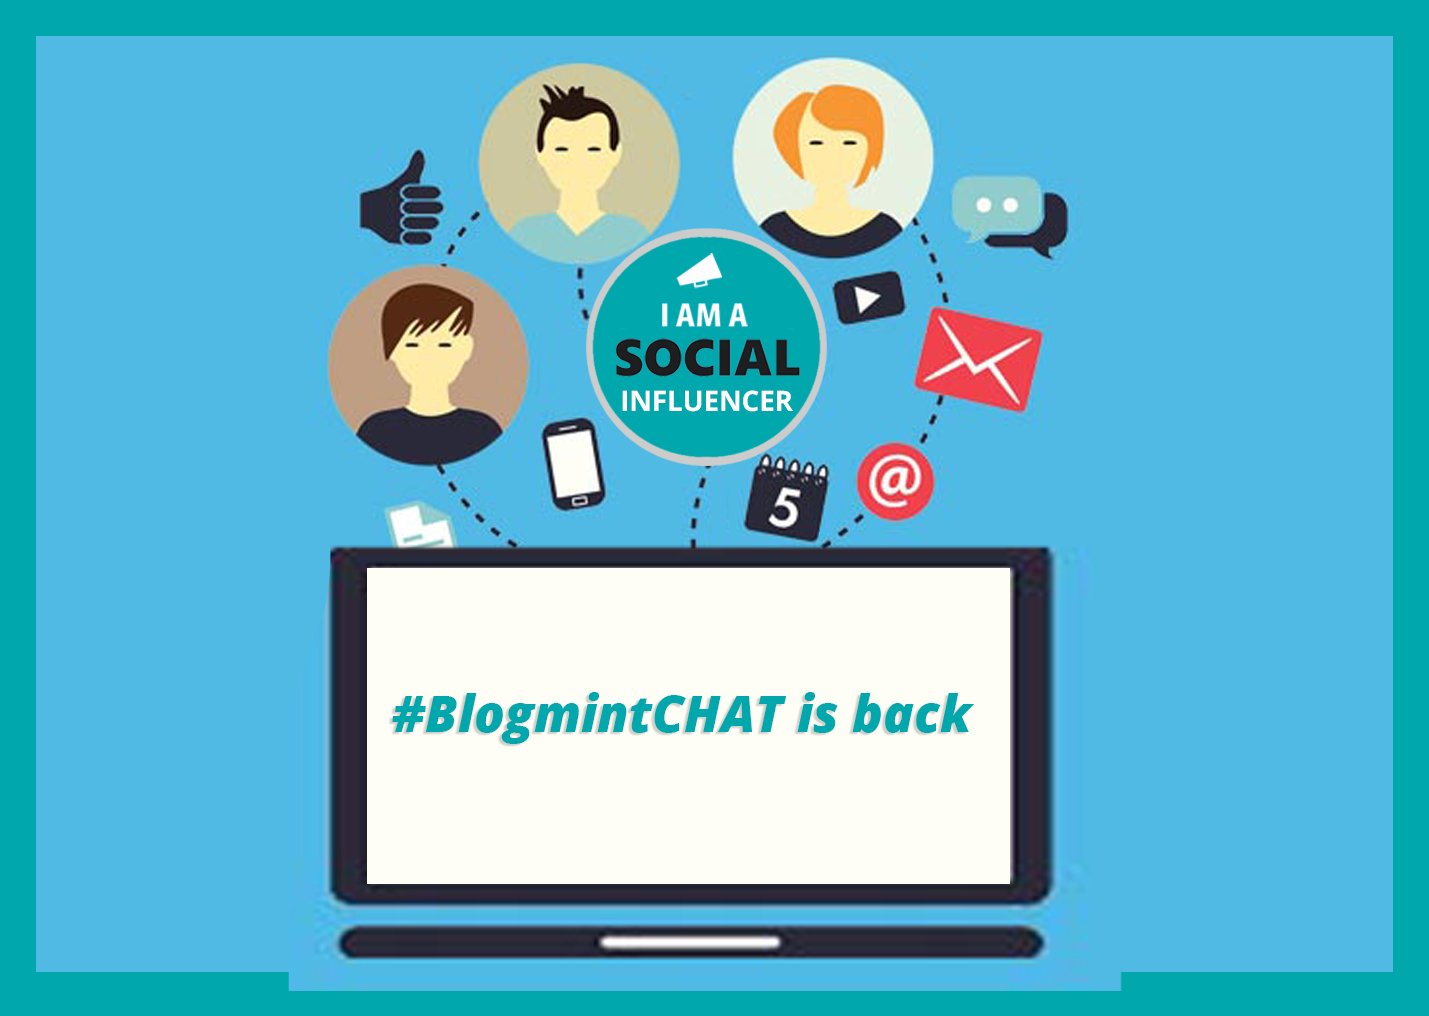 Mark your calendars! Get ready for all the knowledge on food blogging at #BlogmintCHAT with @saltandsandals coming Tuesday. #TwitterChat https://t.co/zdopTxmdv2